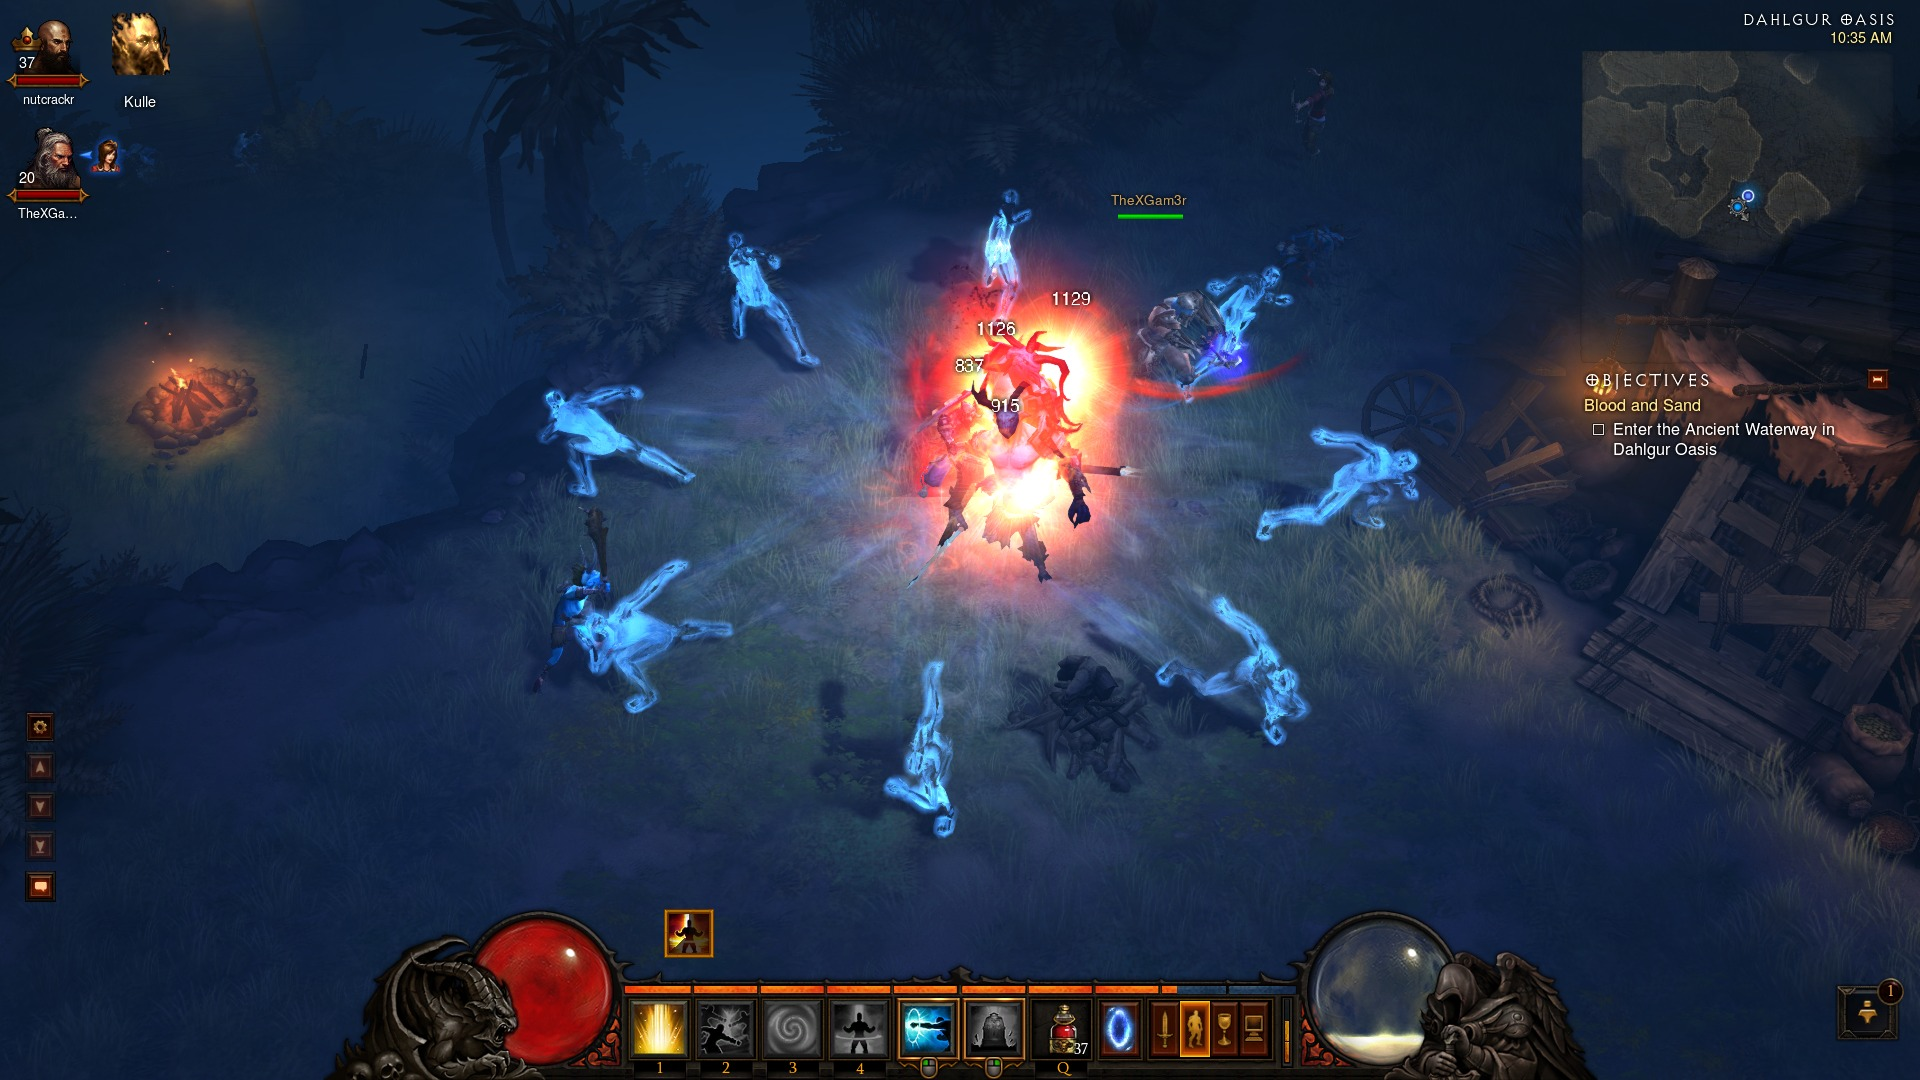 Diablo 3 skills for fighting multiple enemies